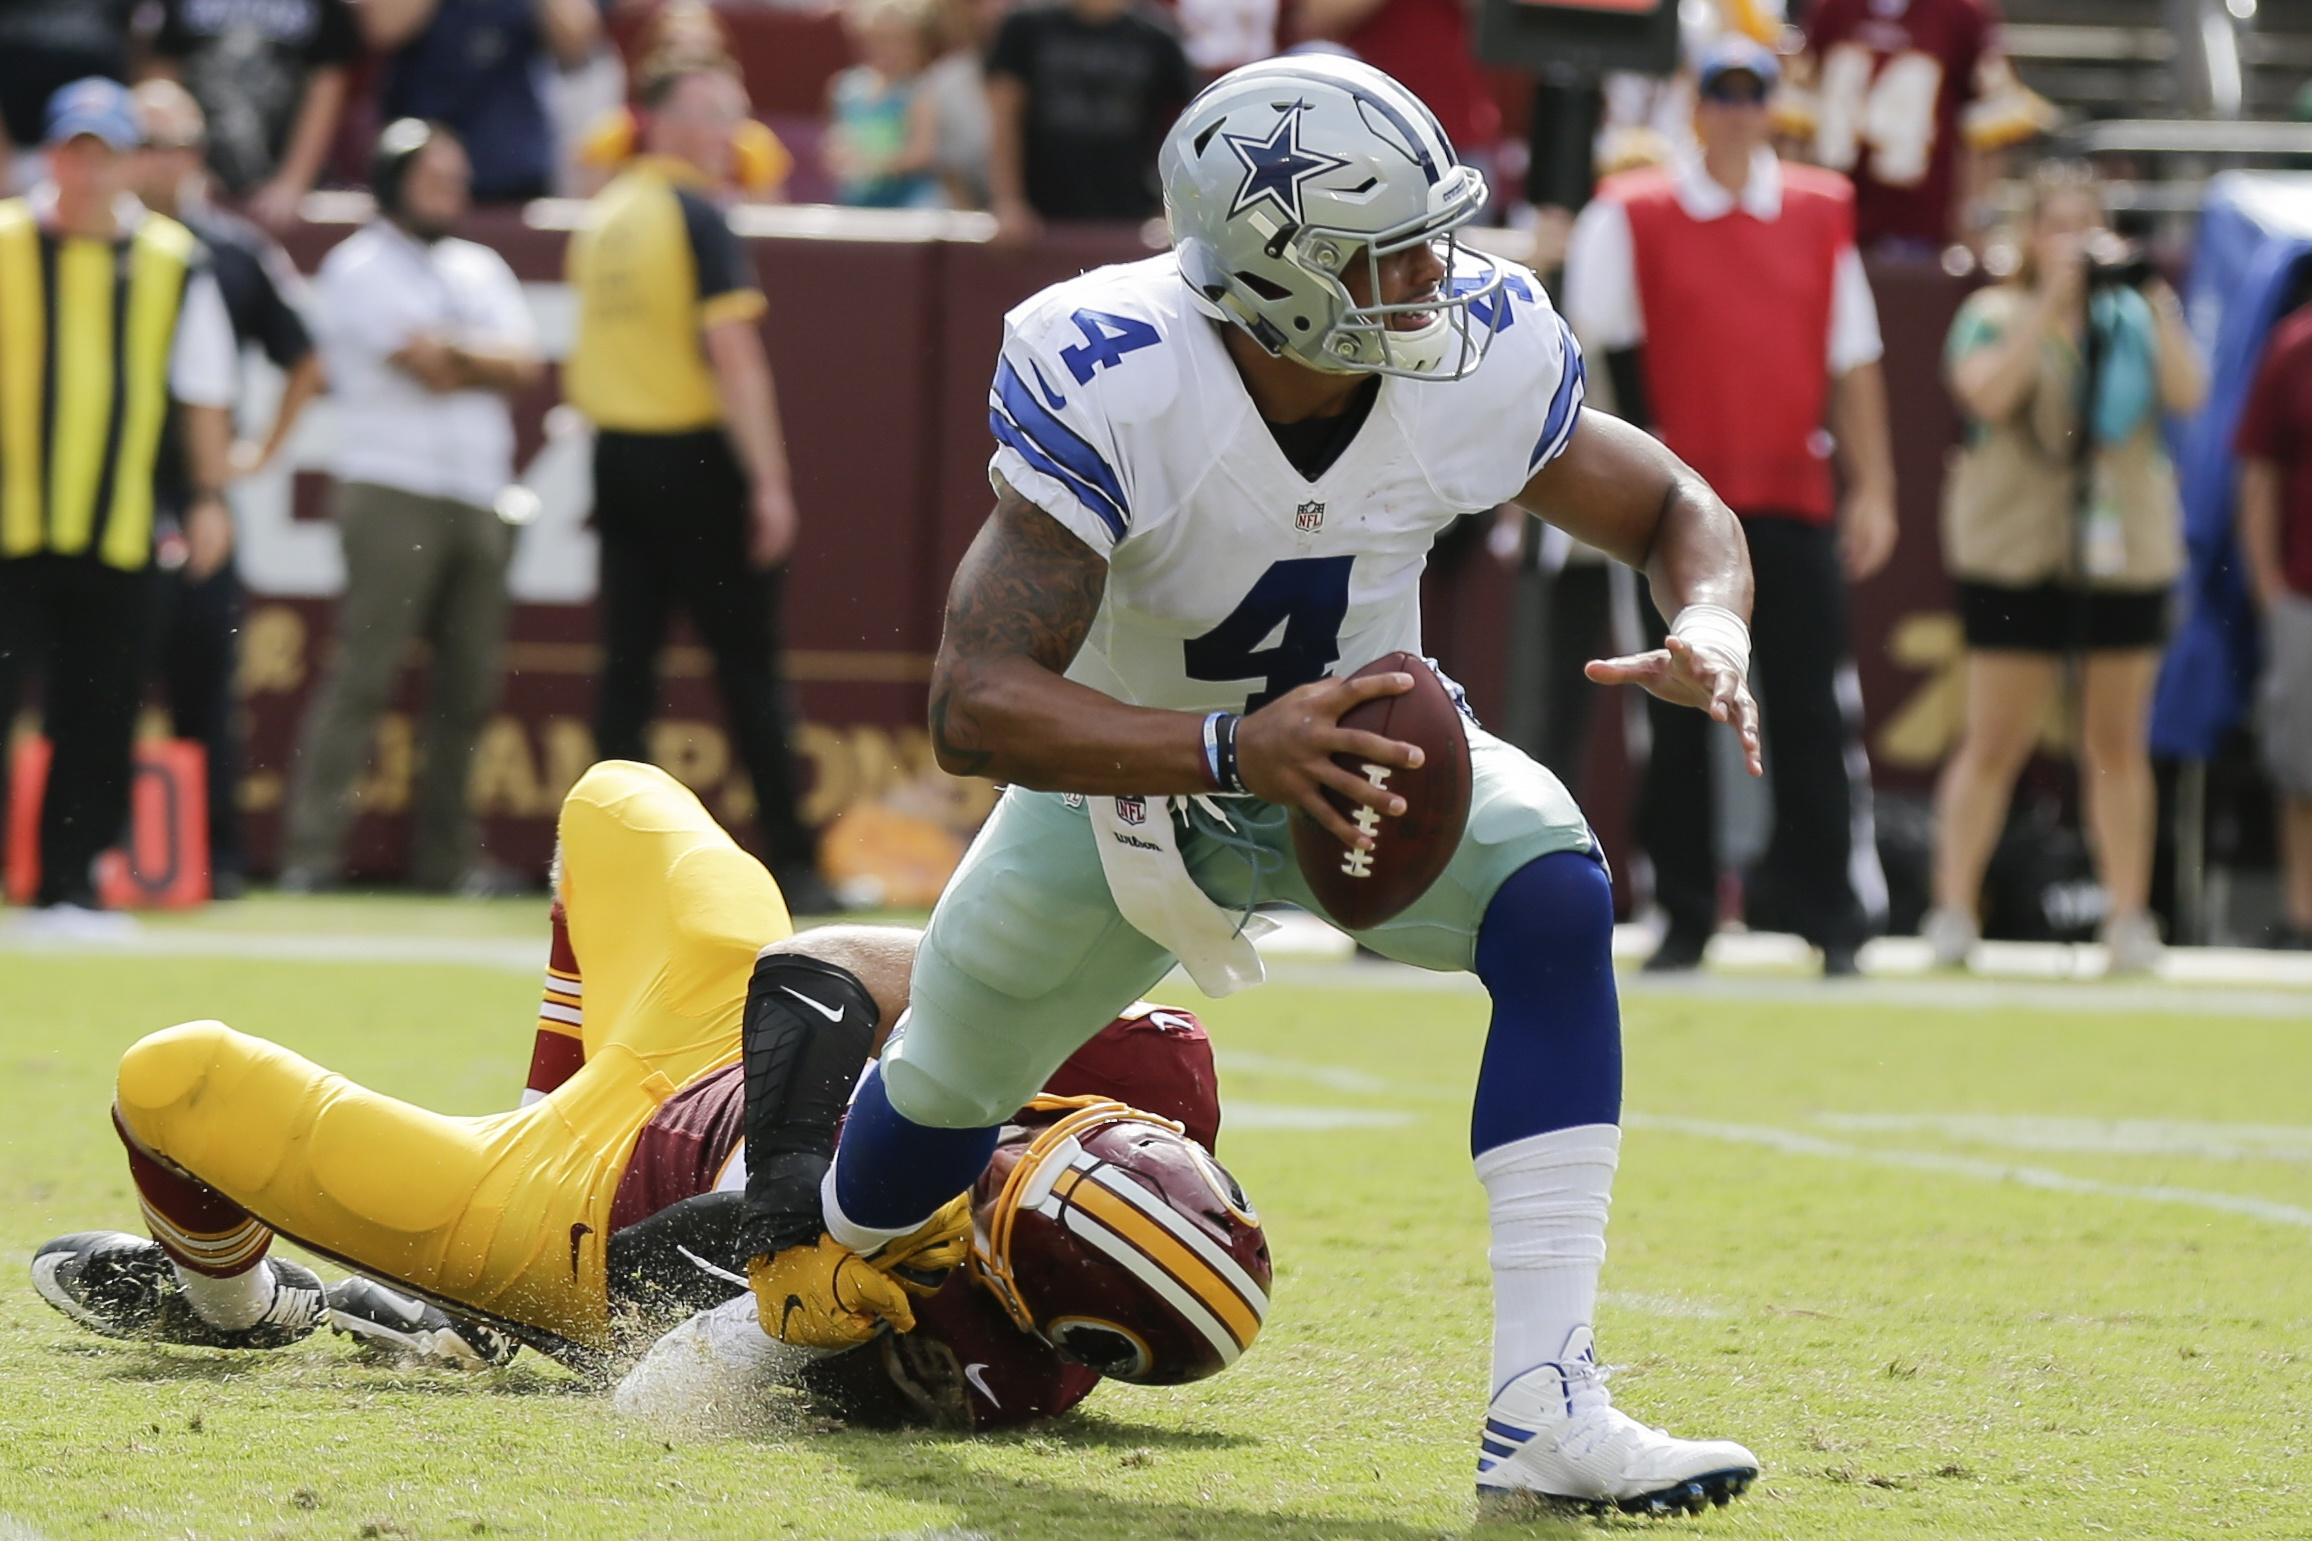 Cowboys-redskins-thanksgiving-game-is-nfls-most-expensive-week-12-ticket